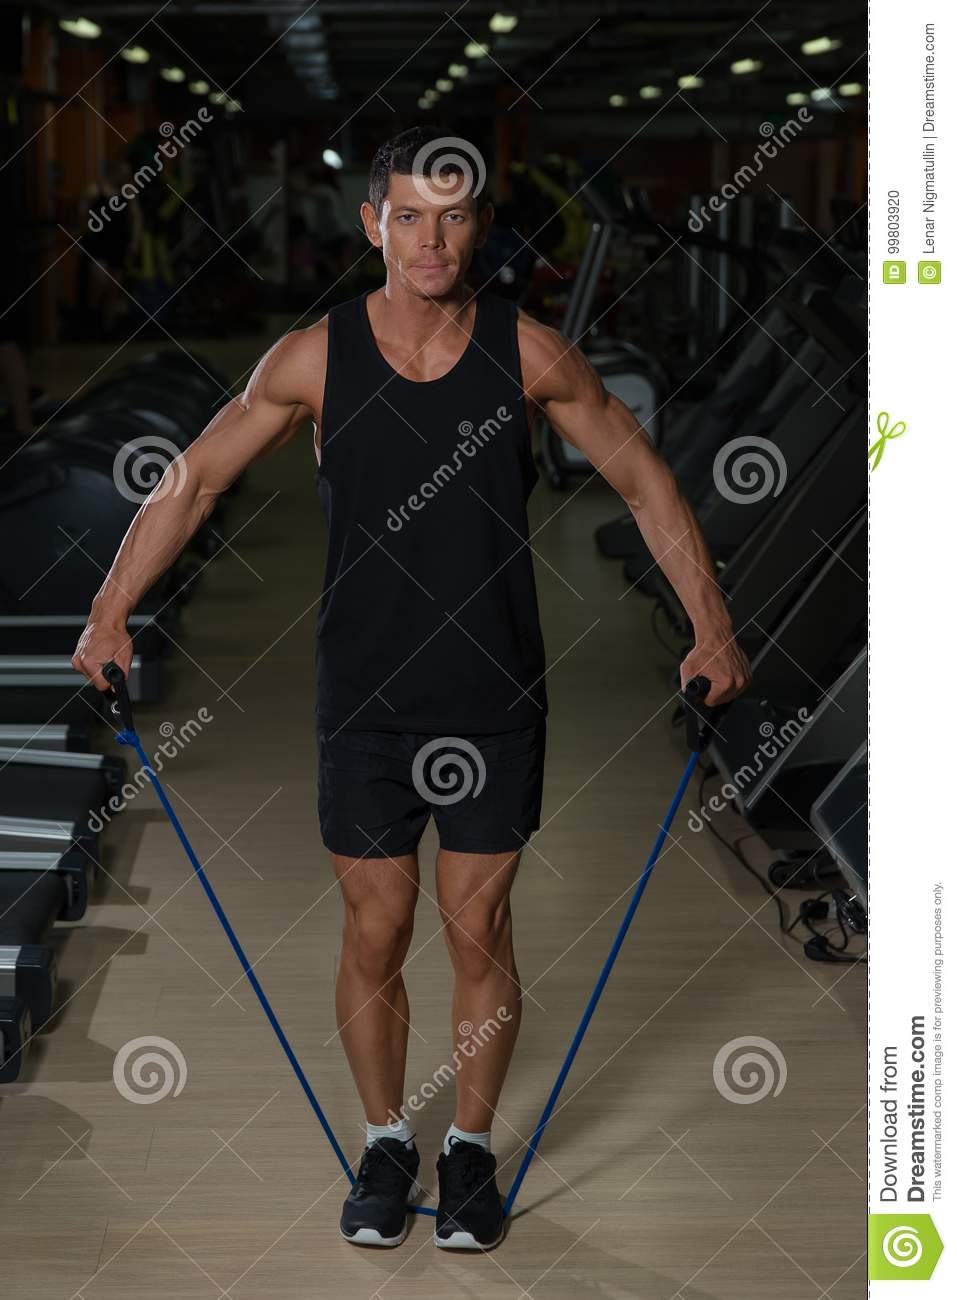 Fitness man exercising with stretching band in the gym. Muscular sports man exercising with elastic rubber band.